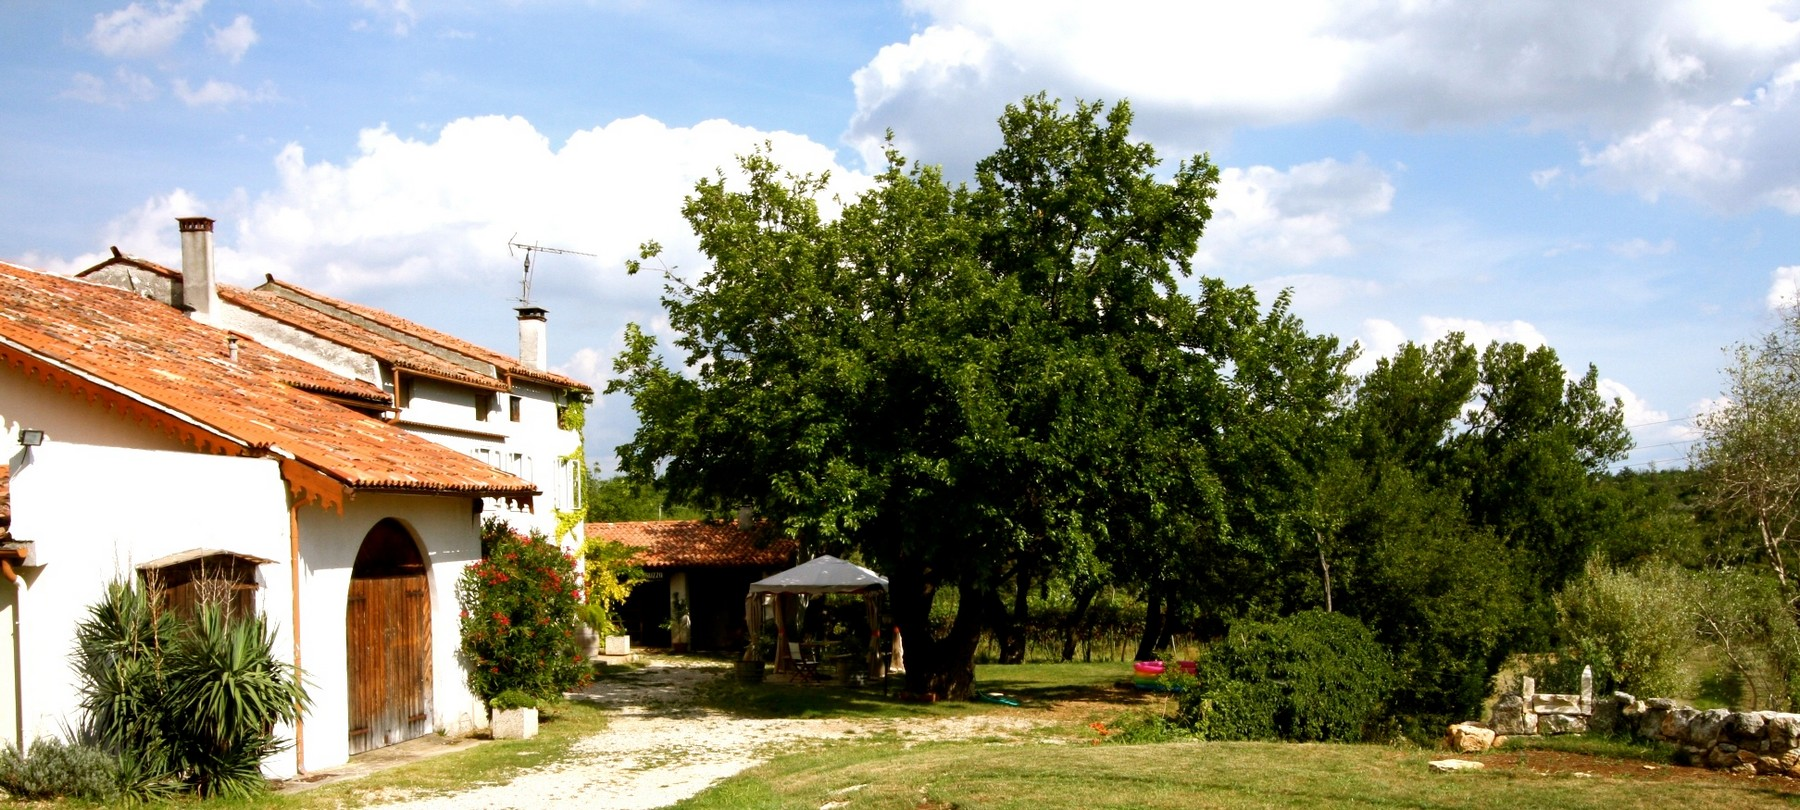 Additional photo for property listing at Own your own Italian organic winery Via Cavallo San Germano Dei Berici, Vicenza 36040 Italy